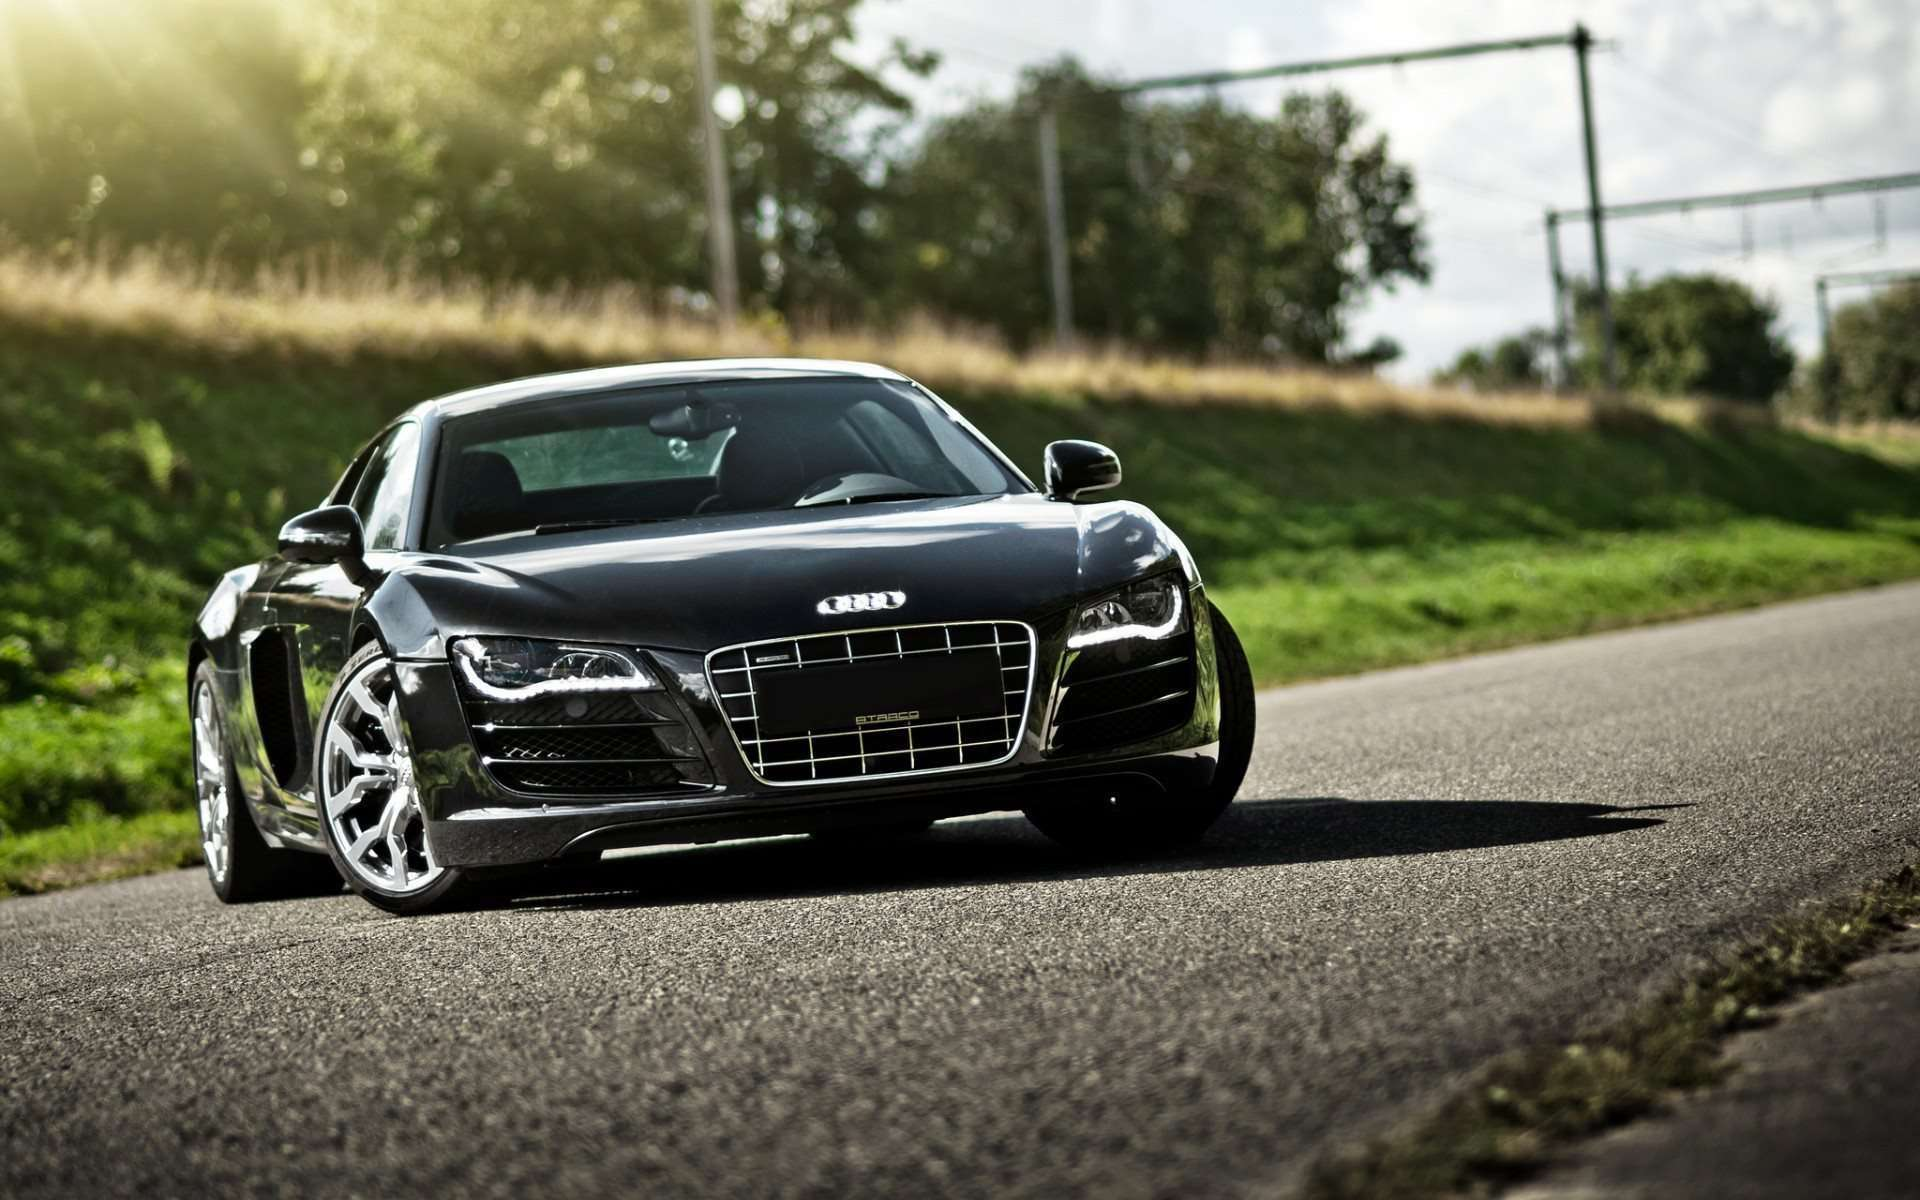 Black Audi R8 Wallpaper HD Widescreen